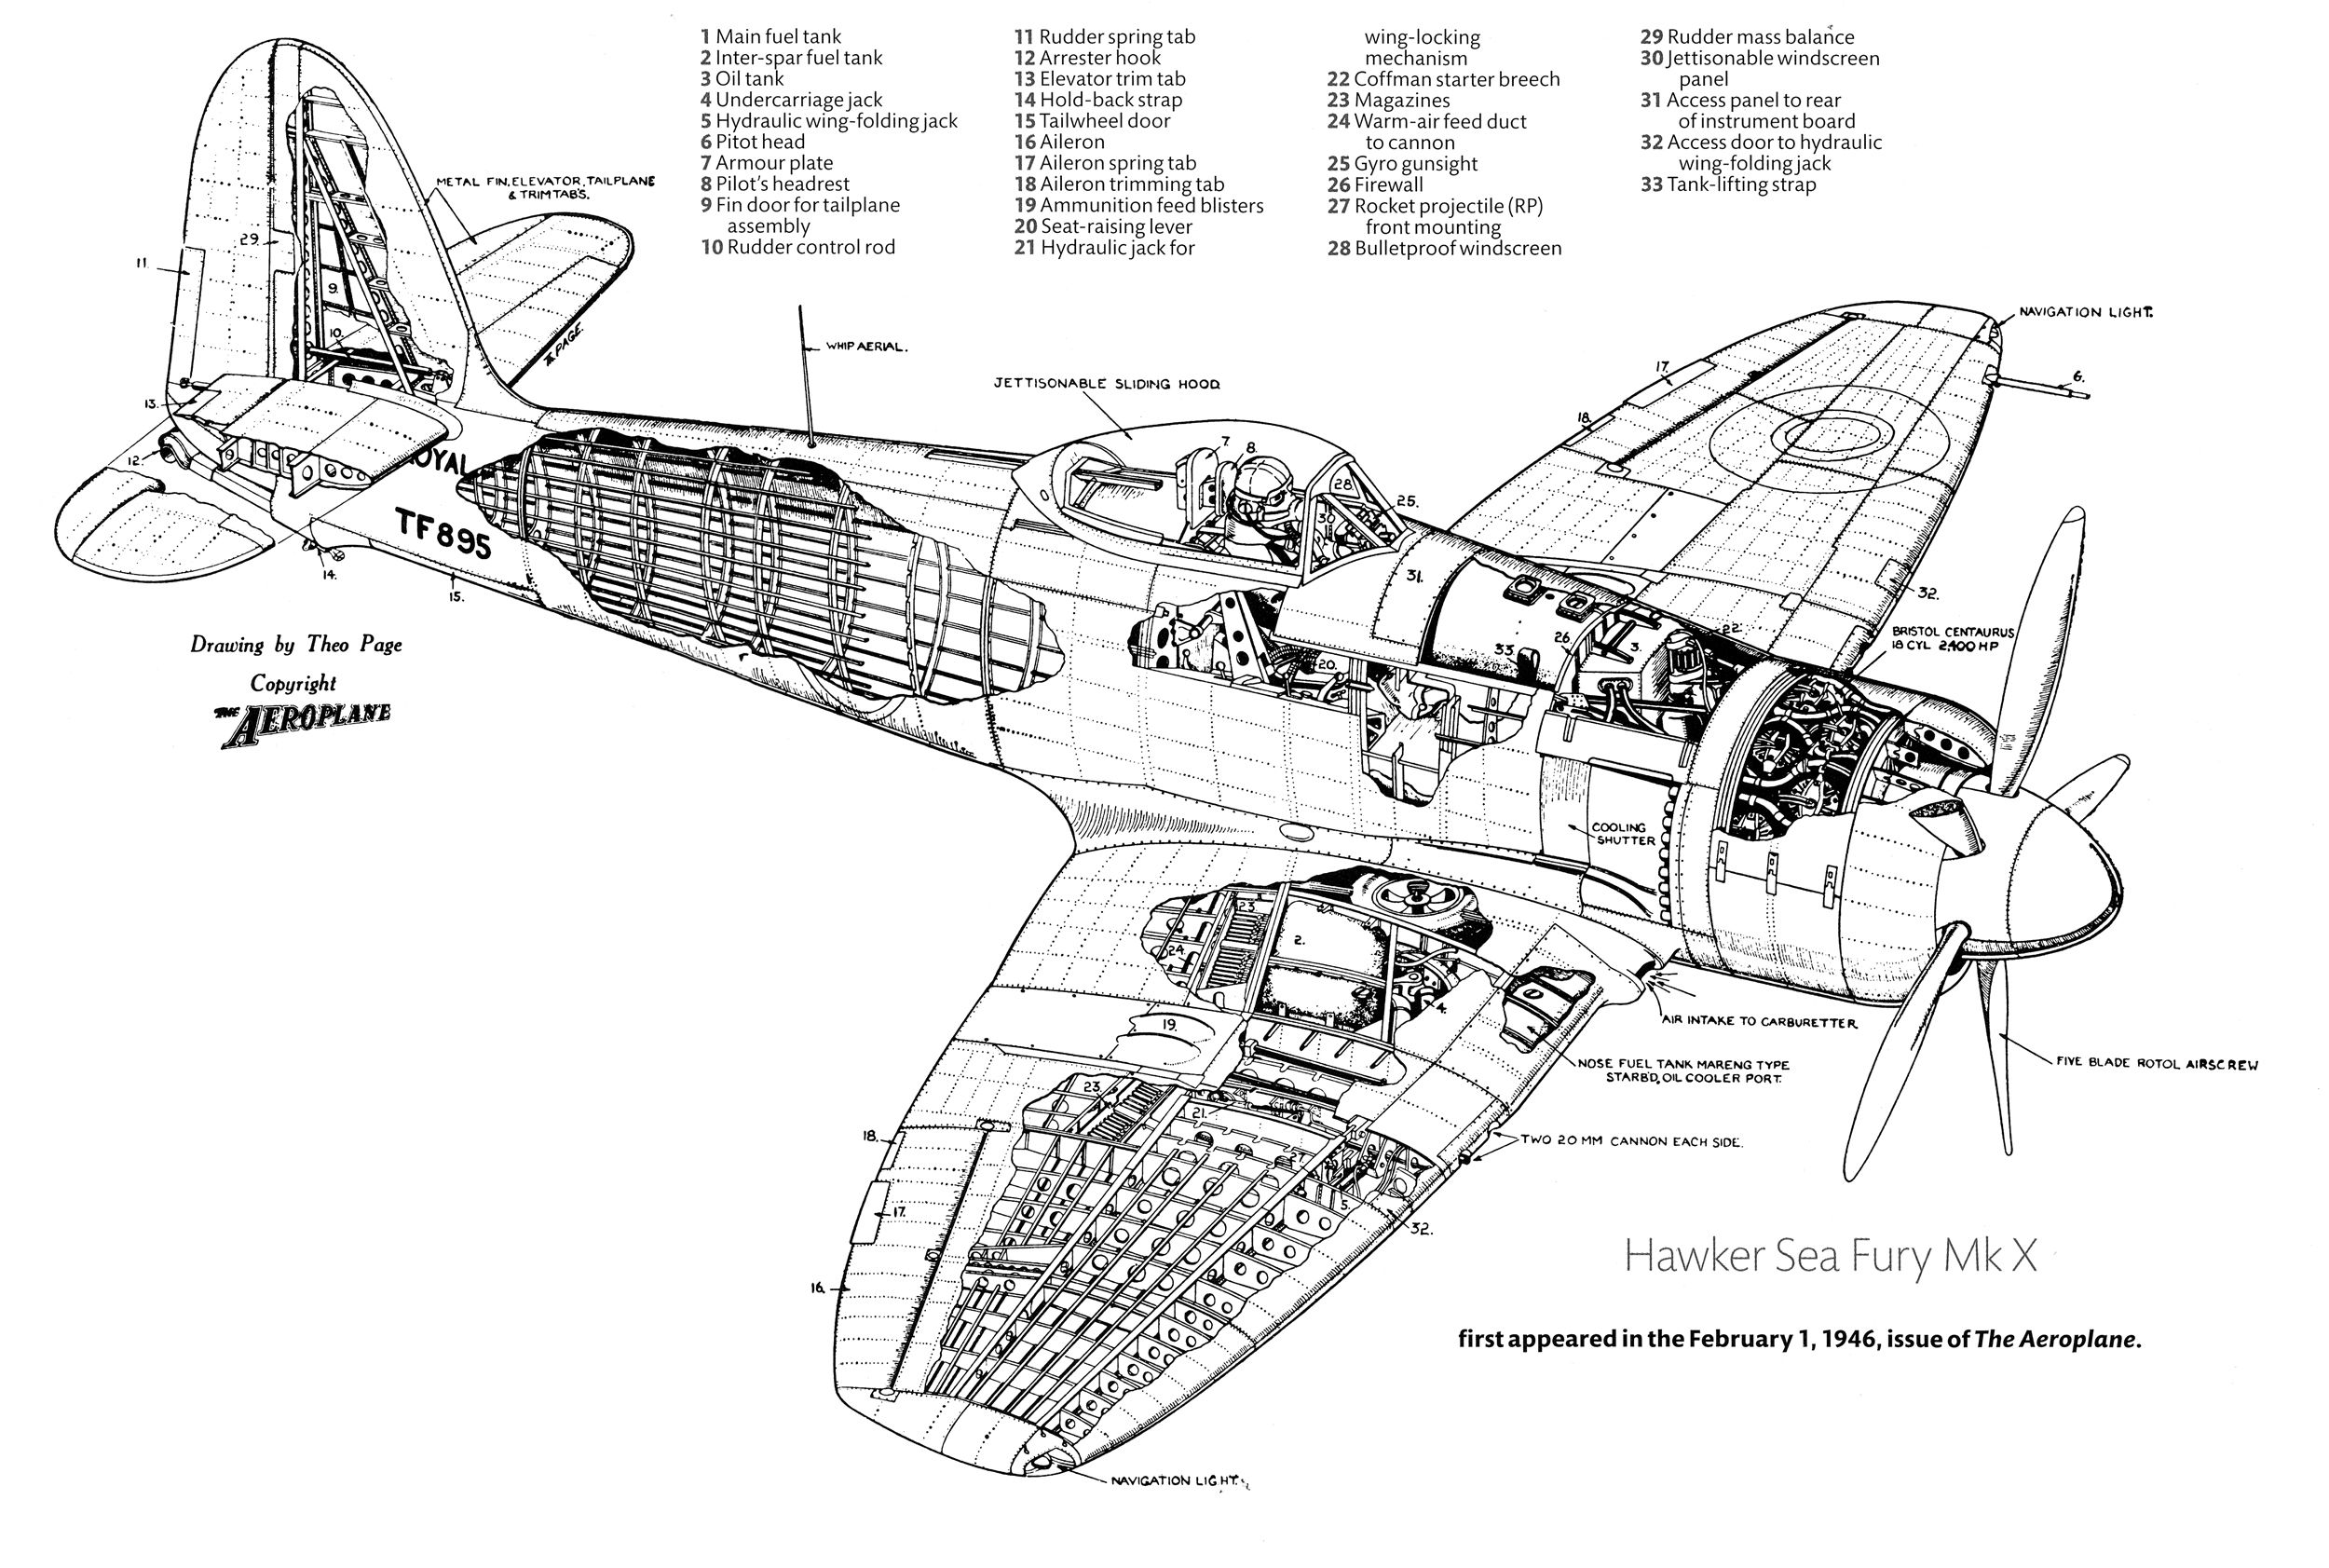 Pin em Aircraft Posters and Diagrams-Piston Engines